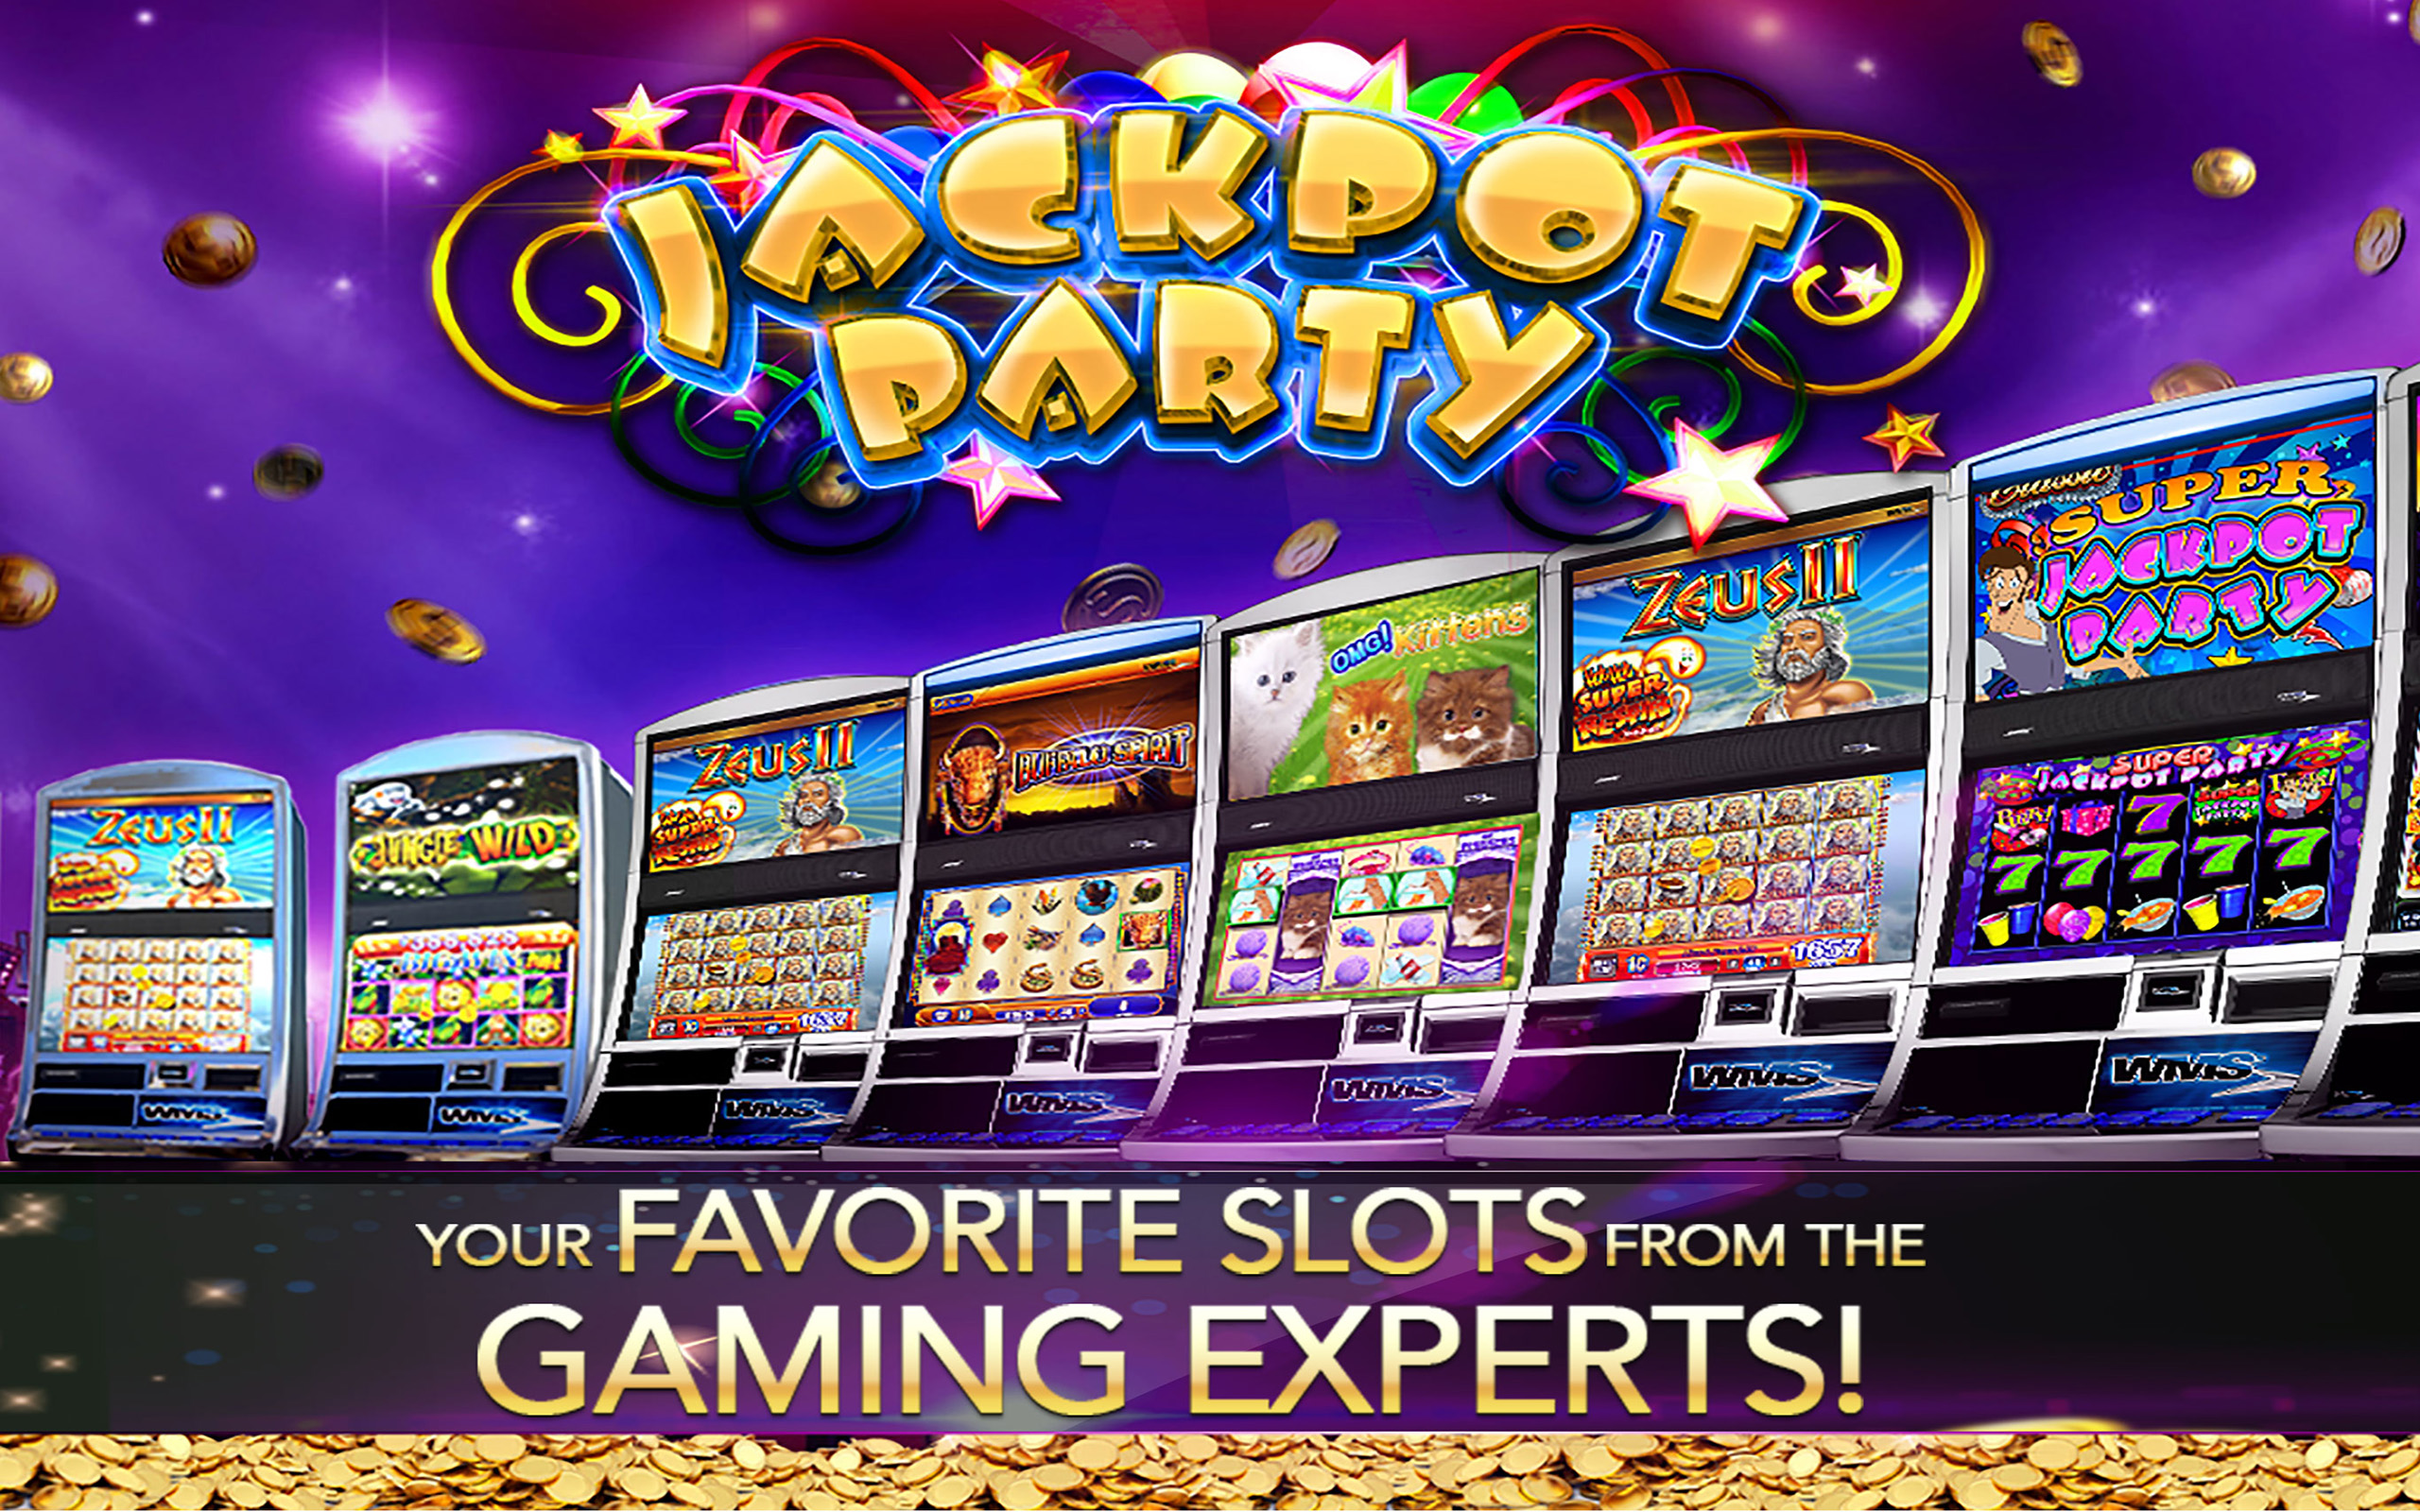 jackpot party casino slots free download for pc